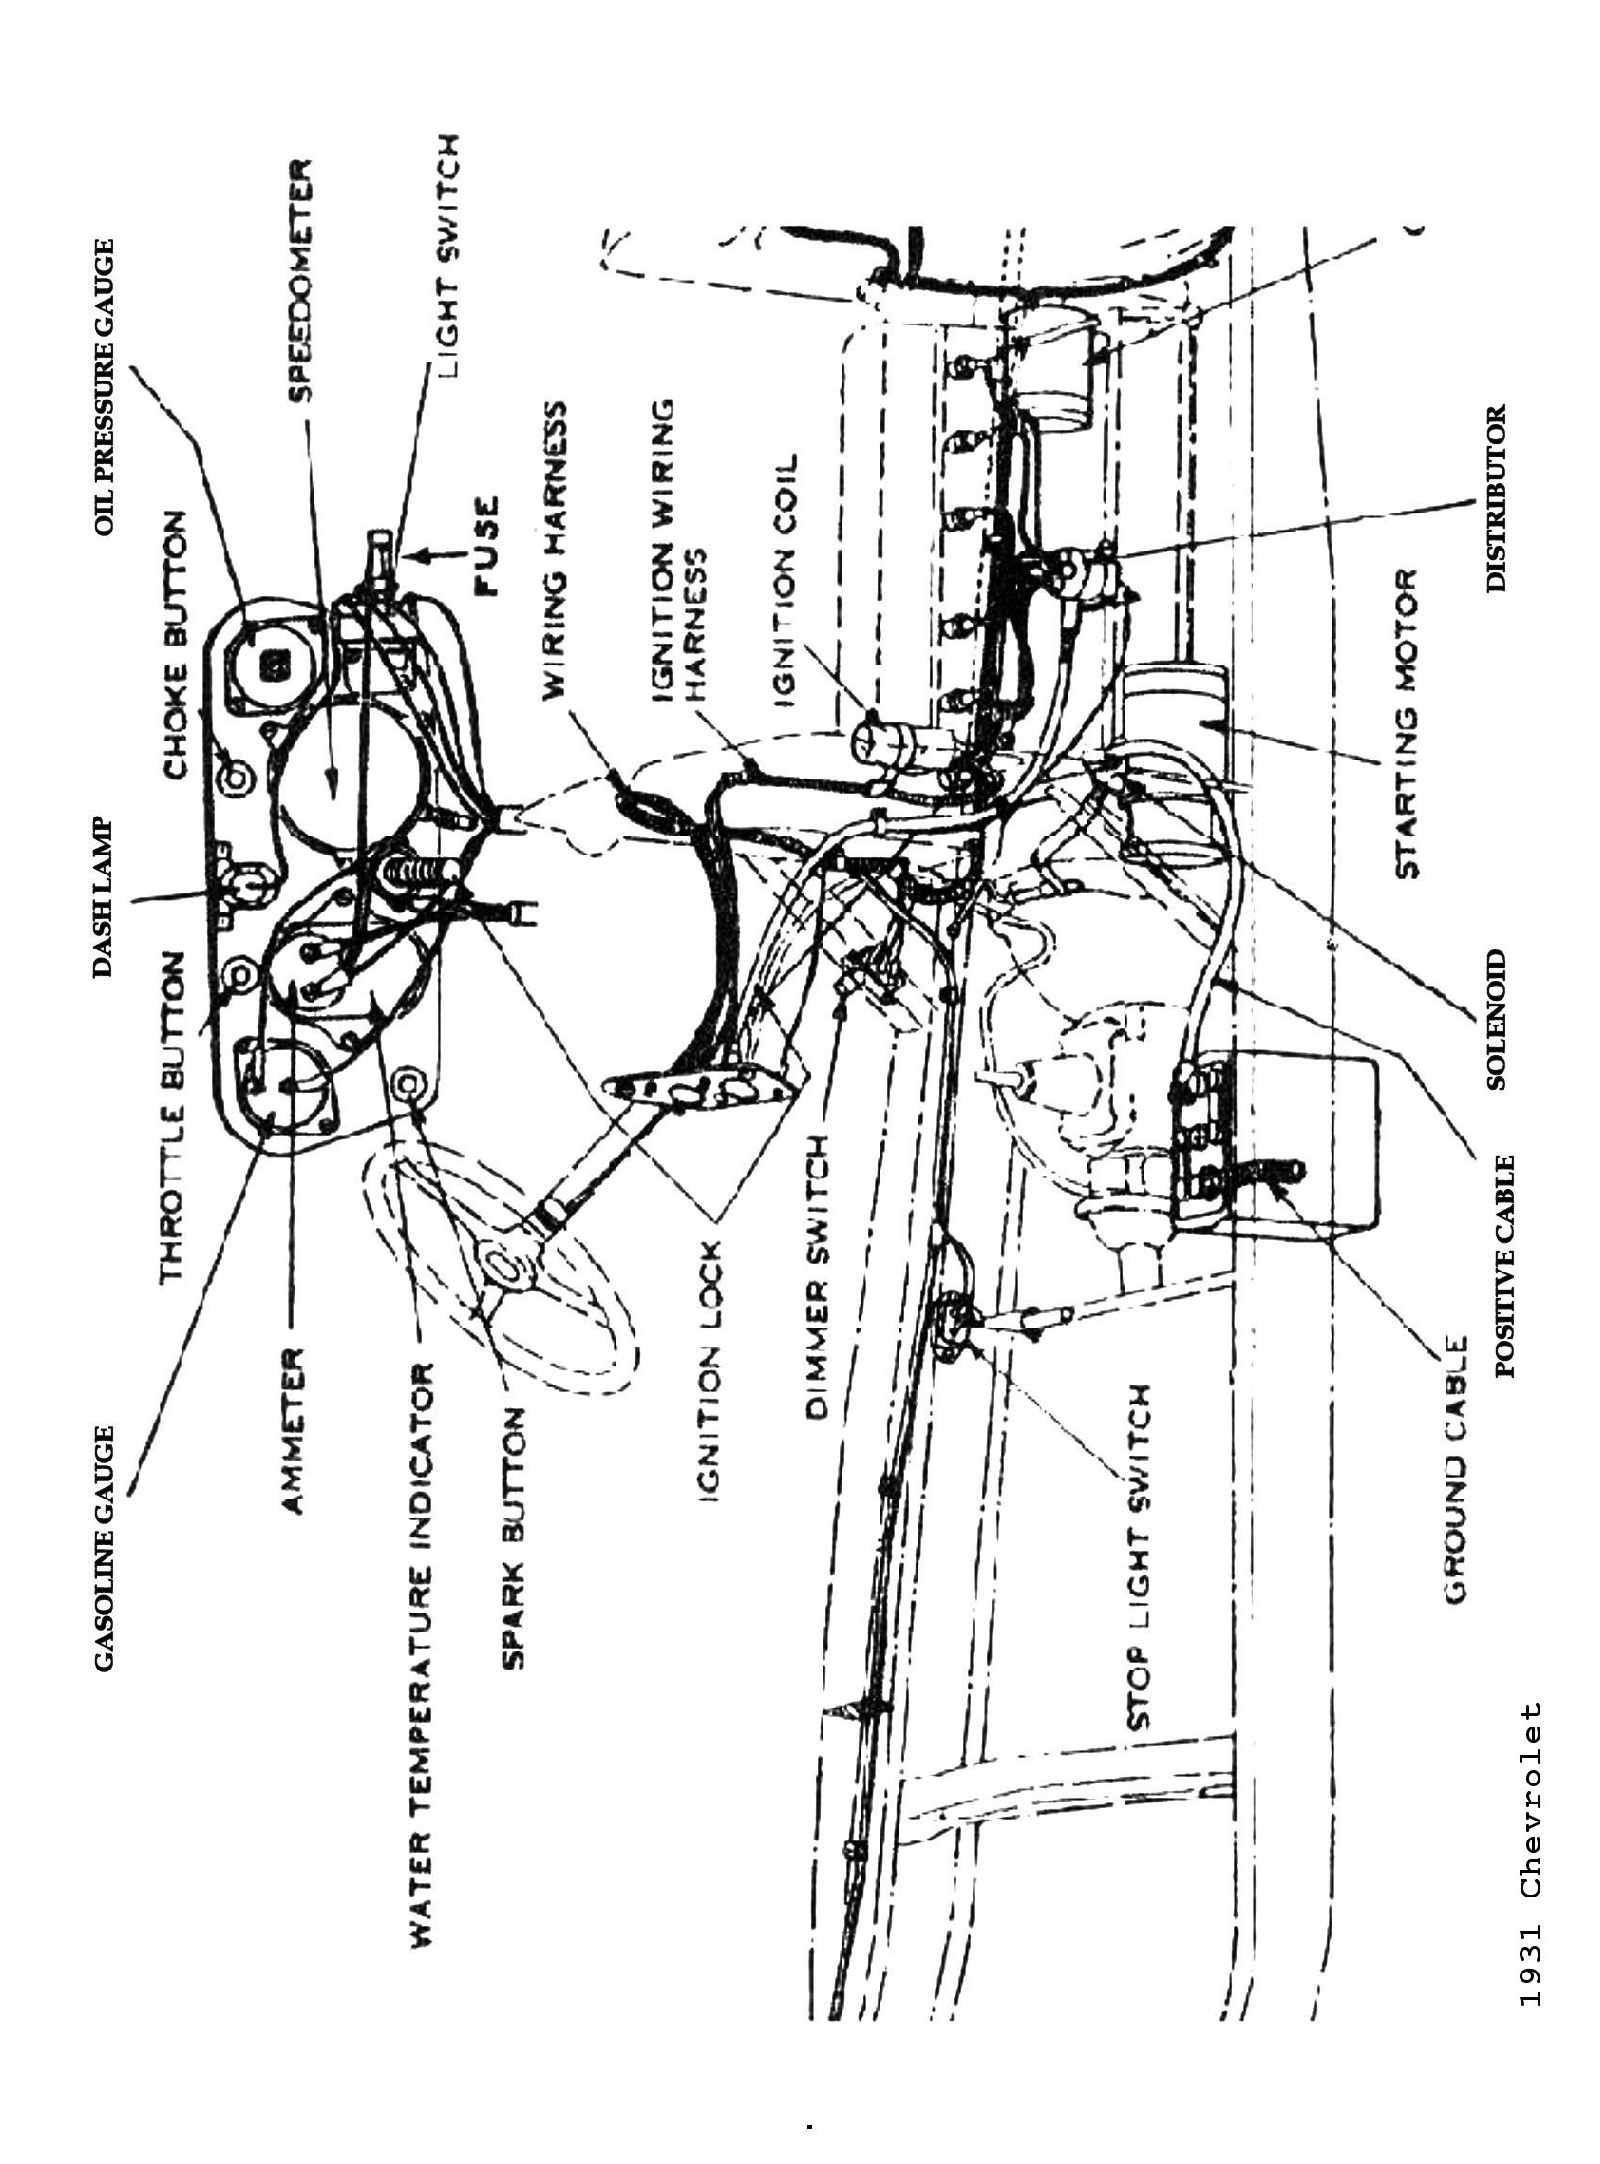 1930 model a wiring diagram